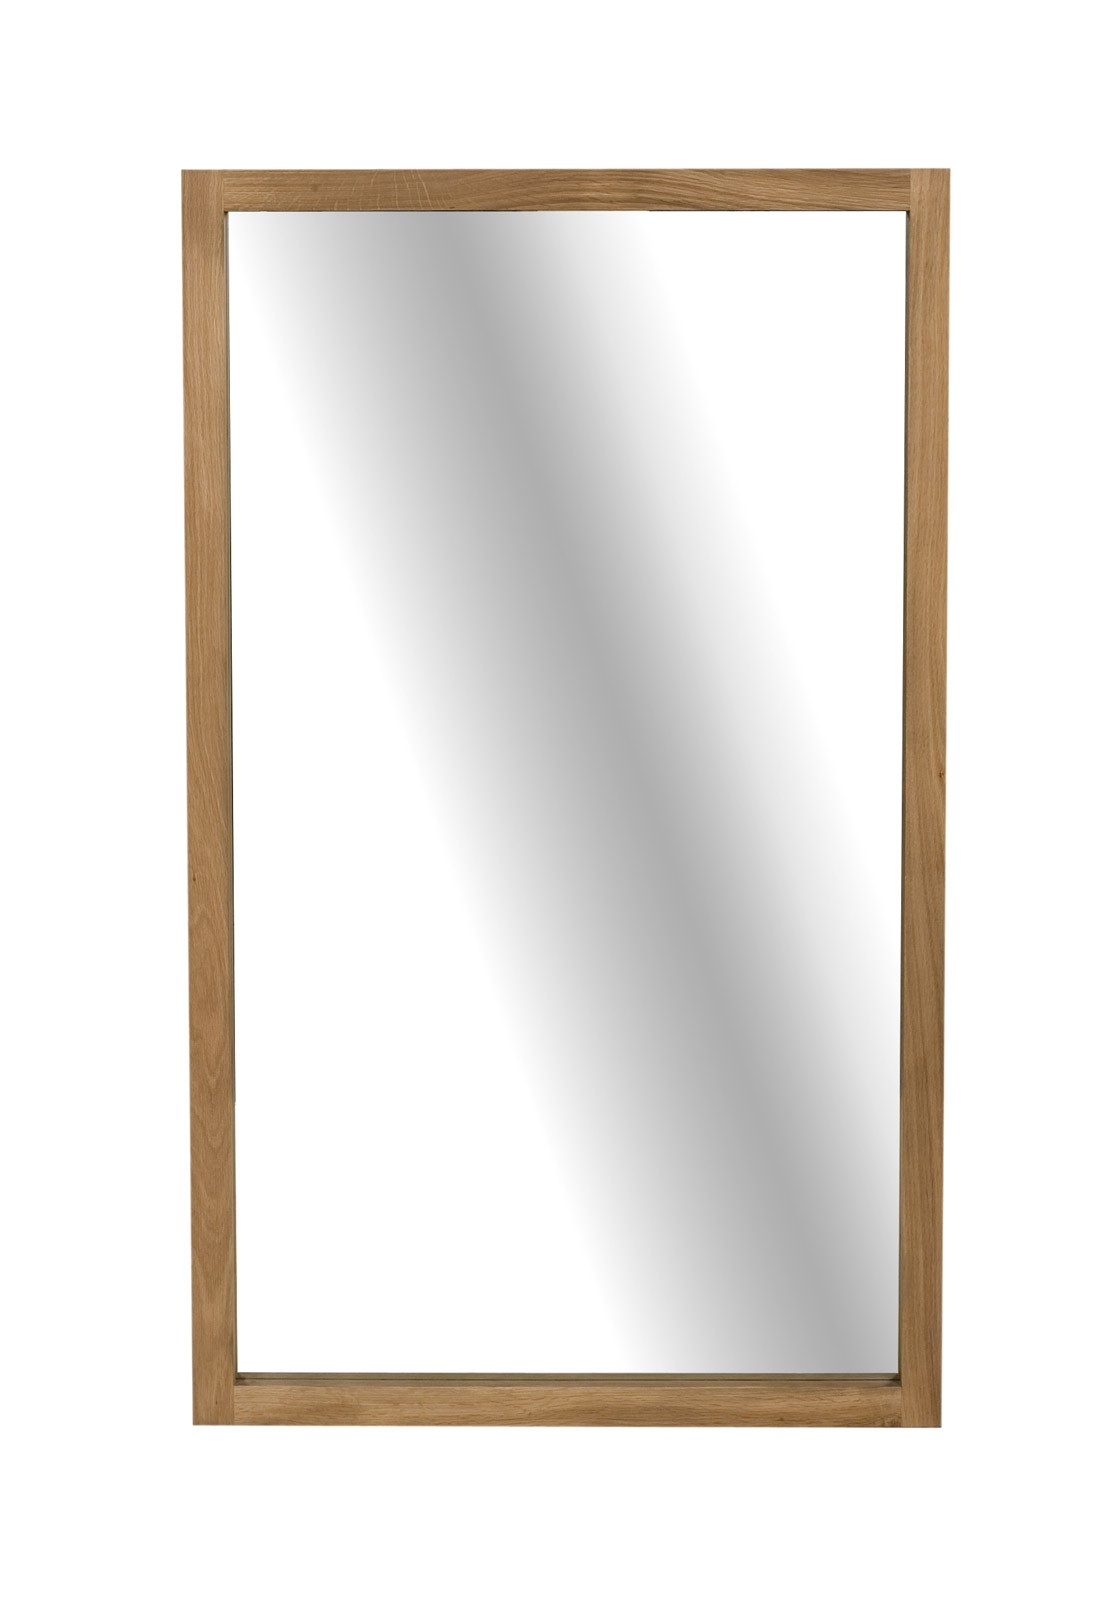 light frame miroir en ch ne d 39 ethnicraft hauteur 150cm On miroir chene